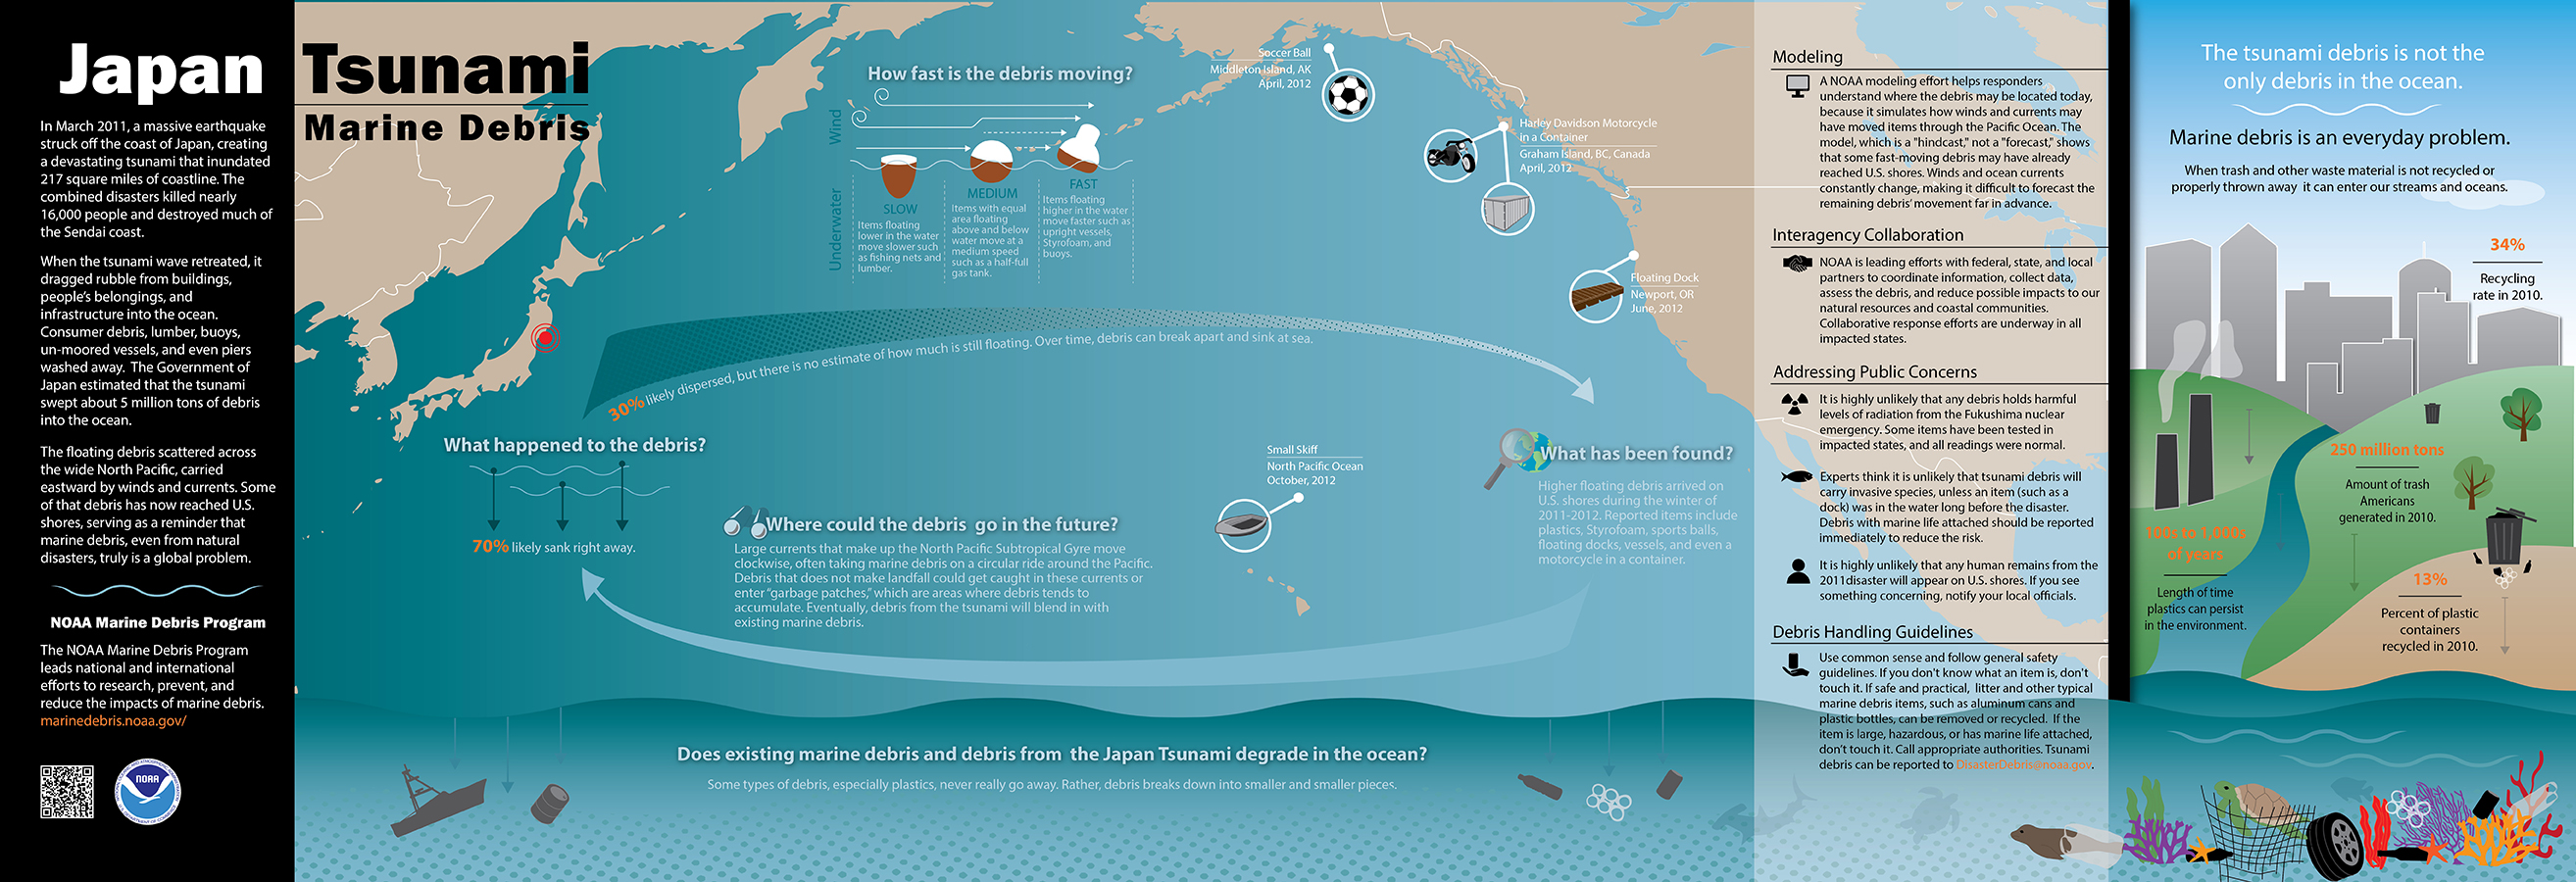 Japan Tsunami Marine Debris Map and Graphic